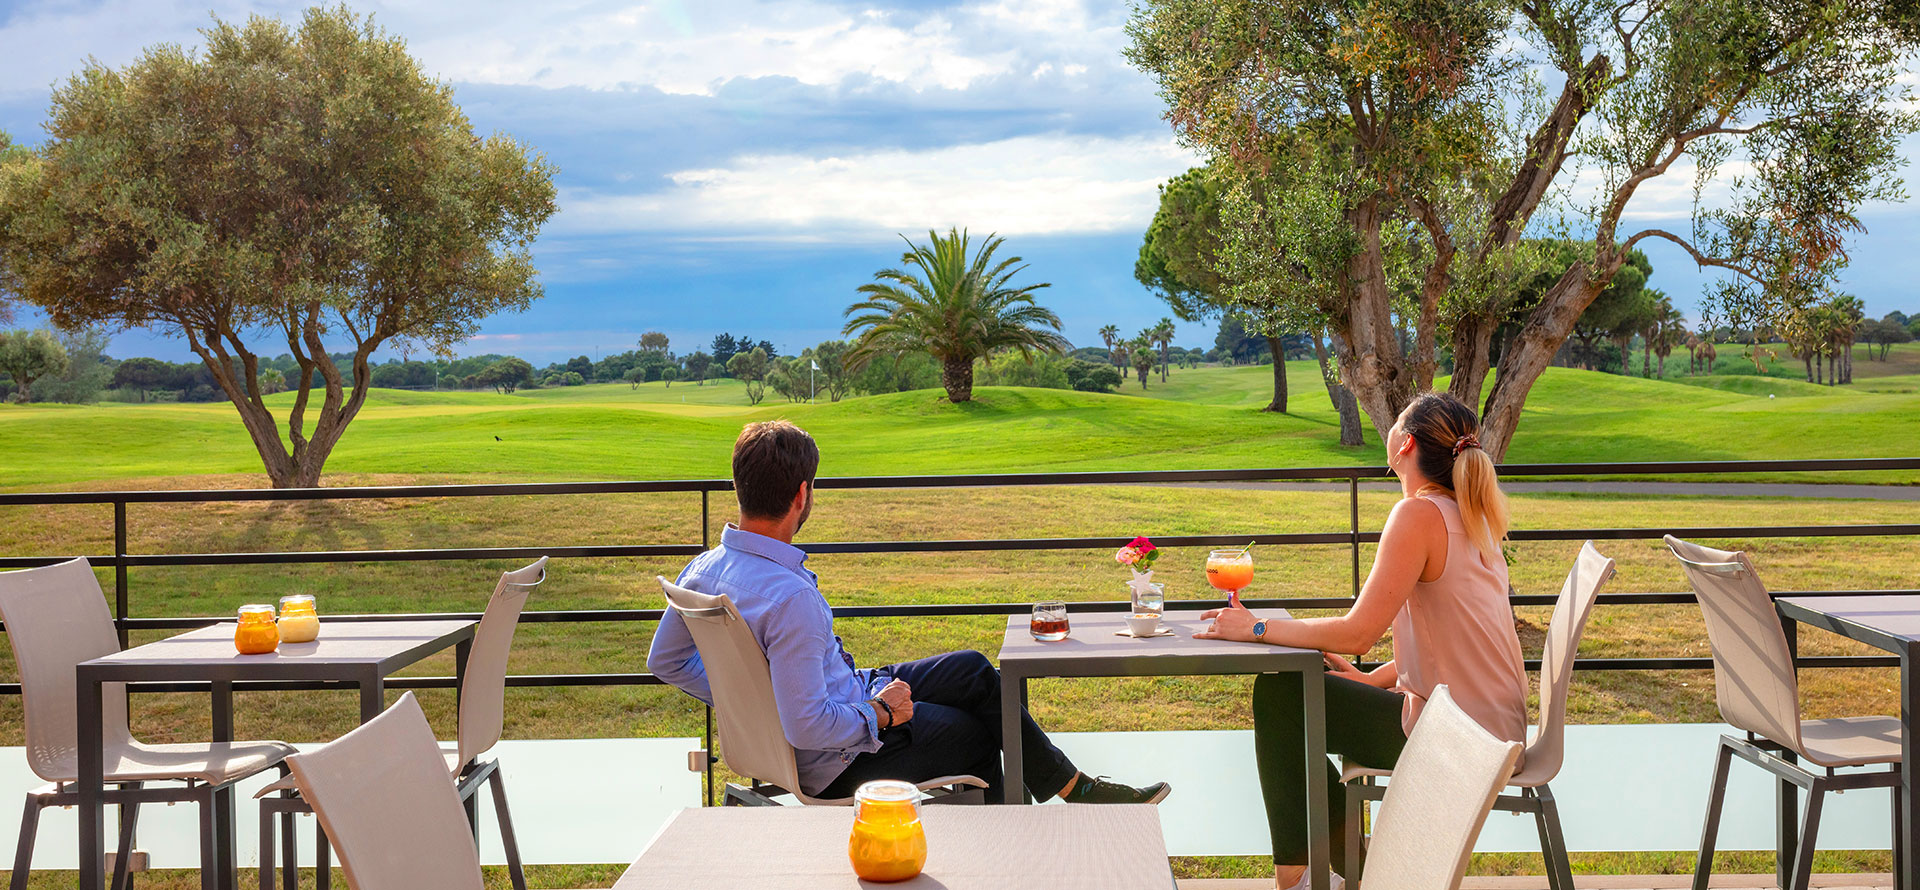 Breakfast in your room or on the patio at the Palmyra Golf hotel in Occitanie